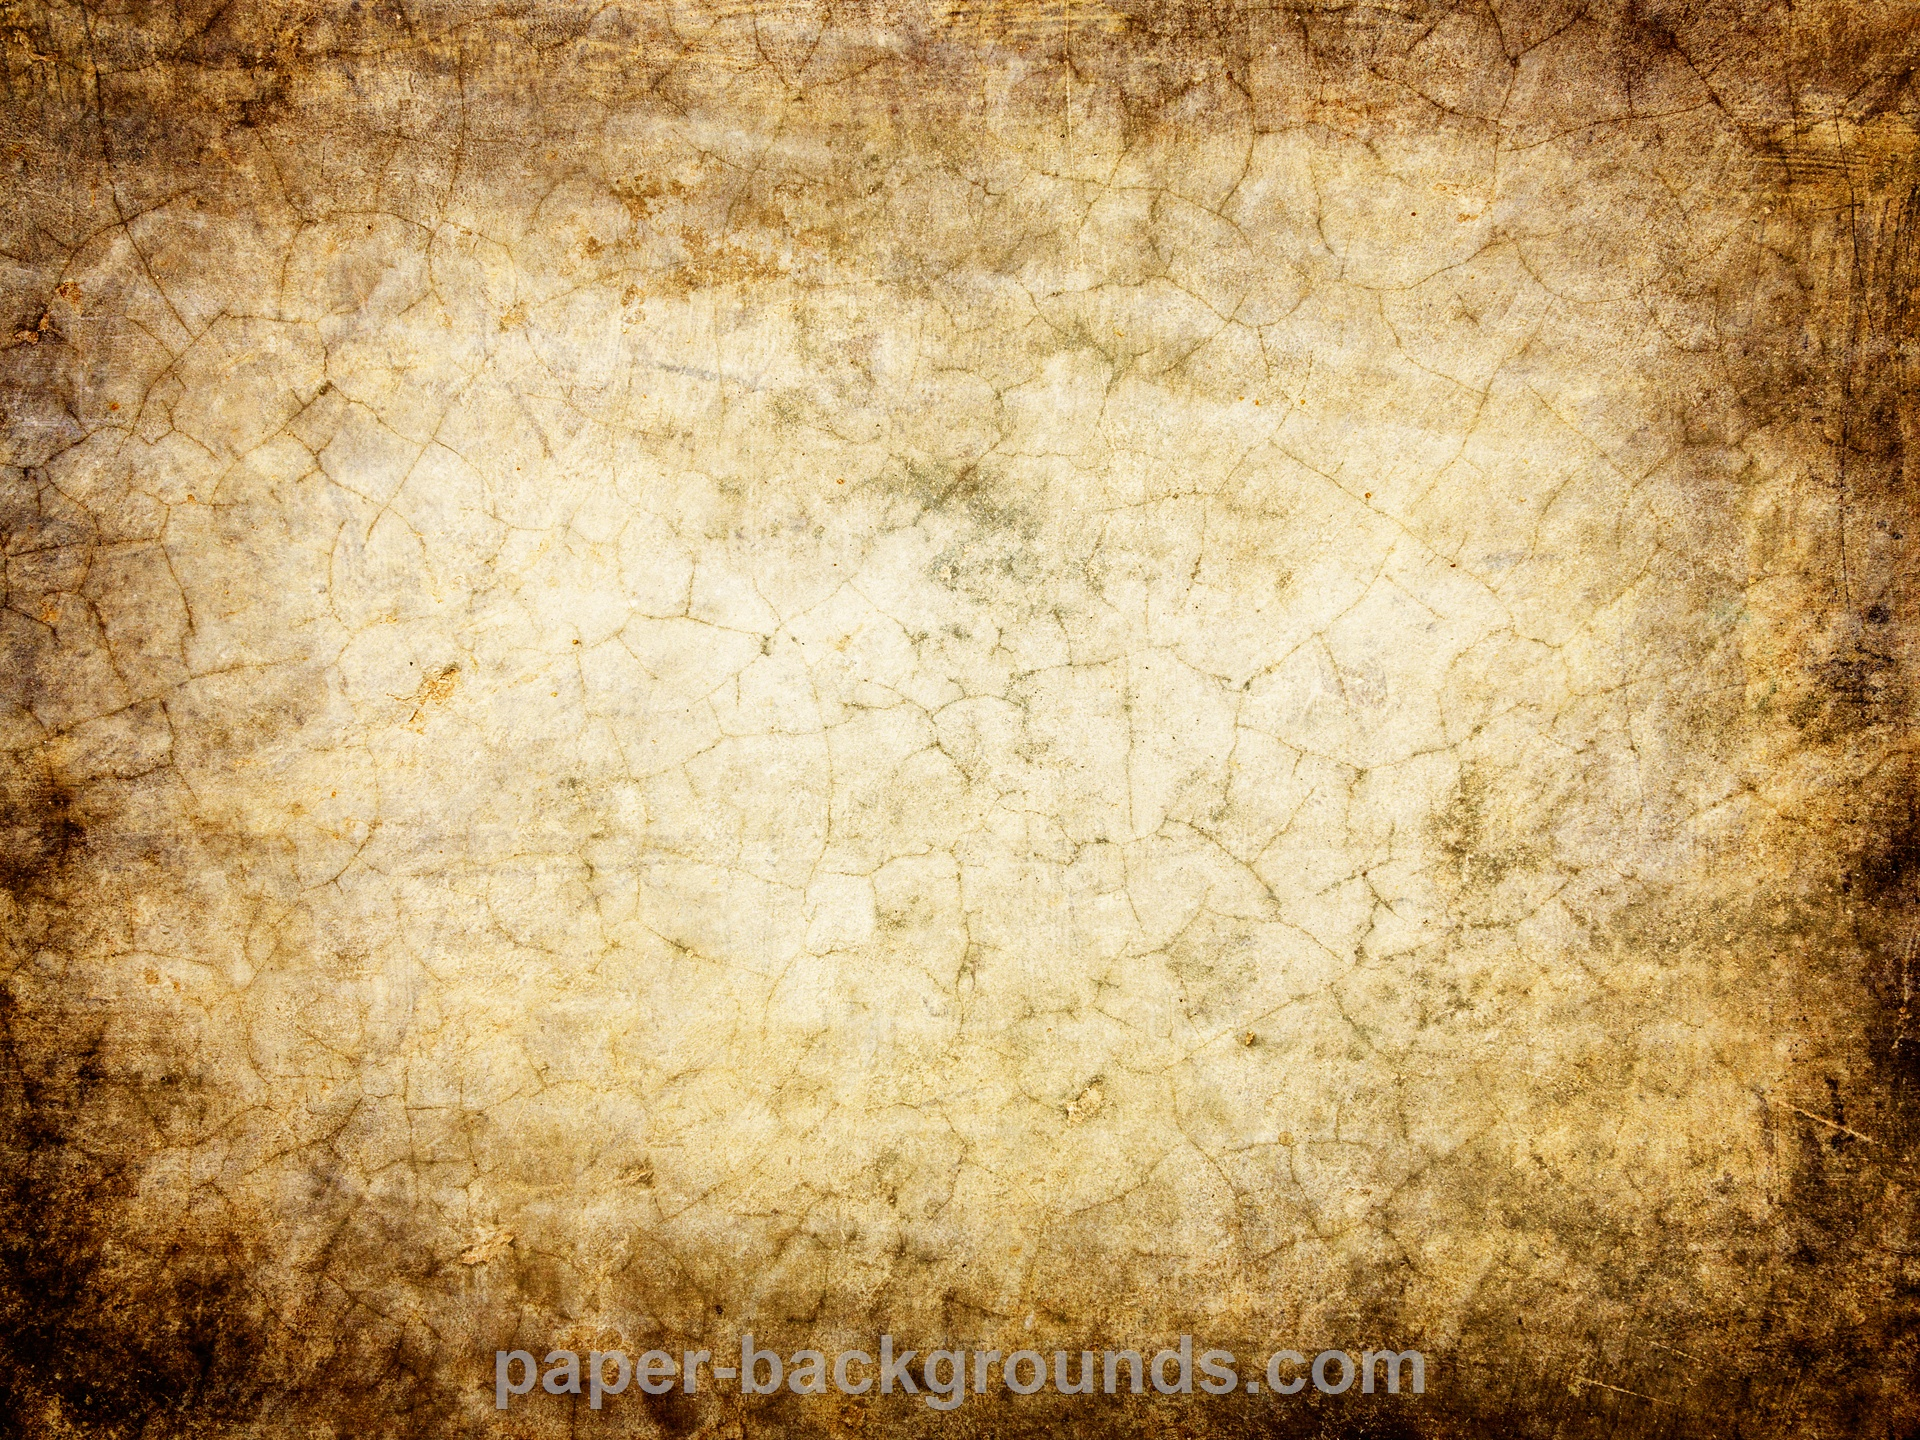 brown grunge background hd Paper Backgrounds 1920x1440